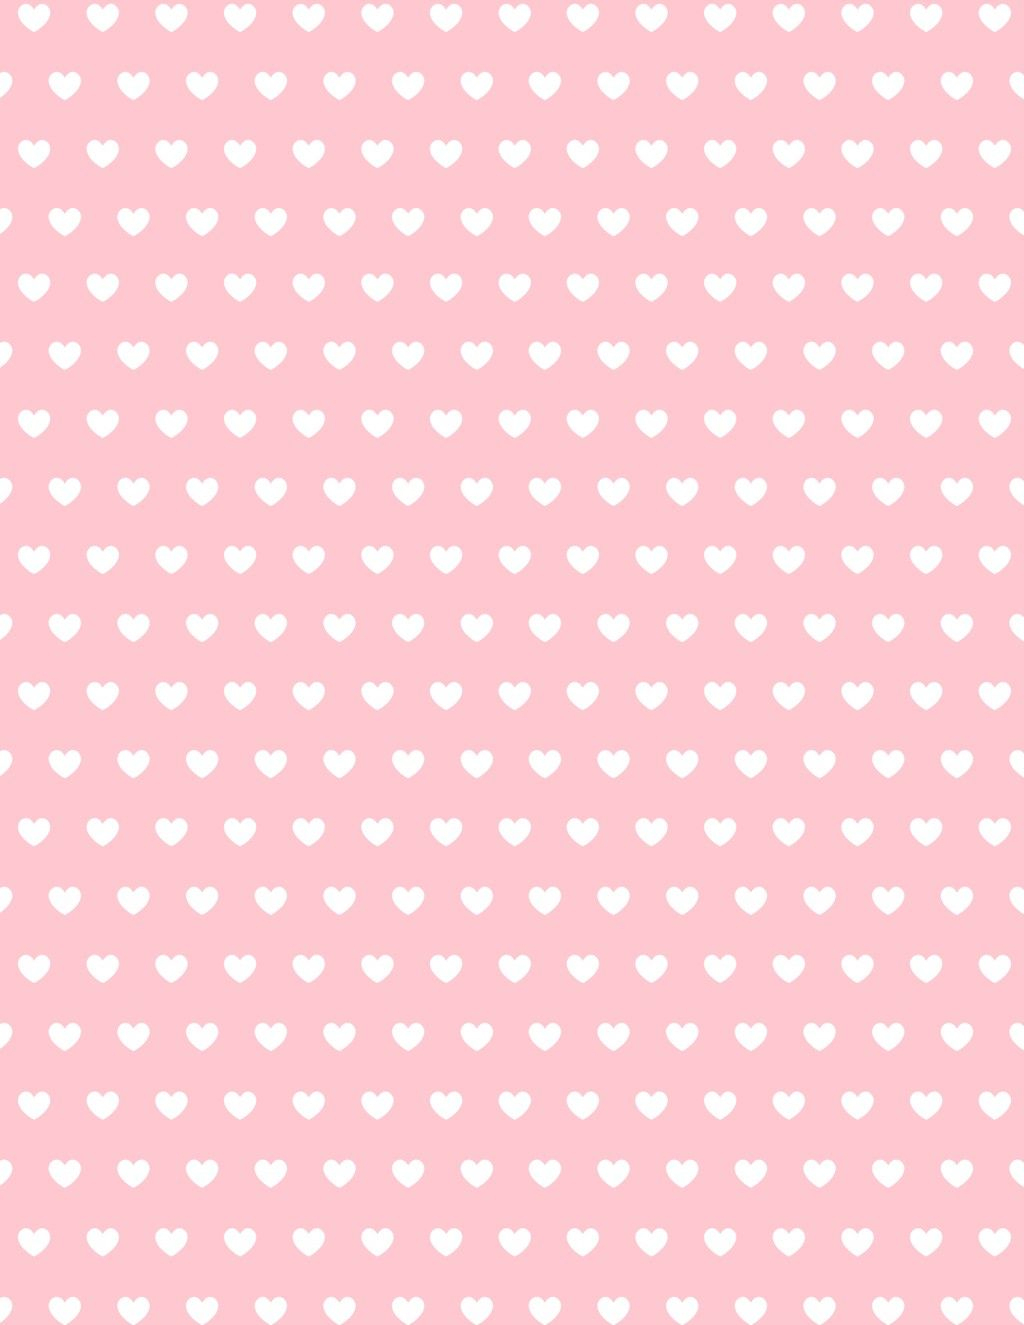 Free Valentine Hearts Scrapbook Paper   Perfect Student - Free Printable Heart Designs